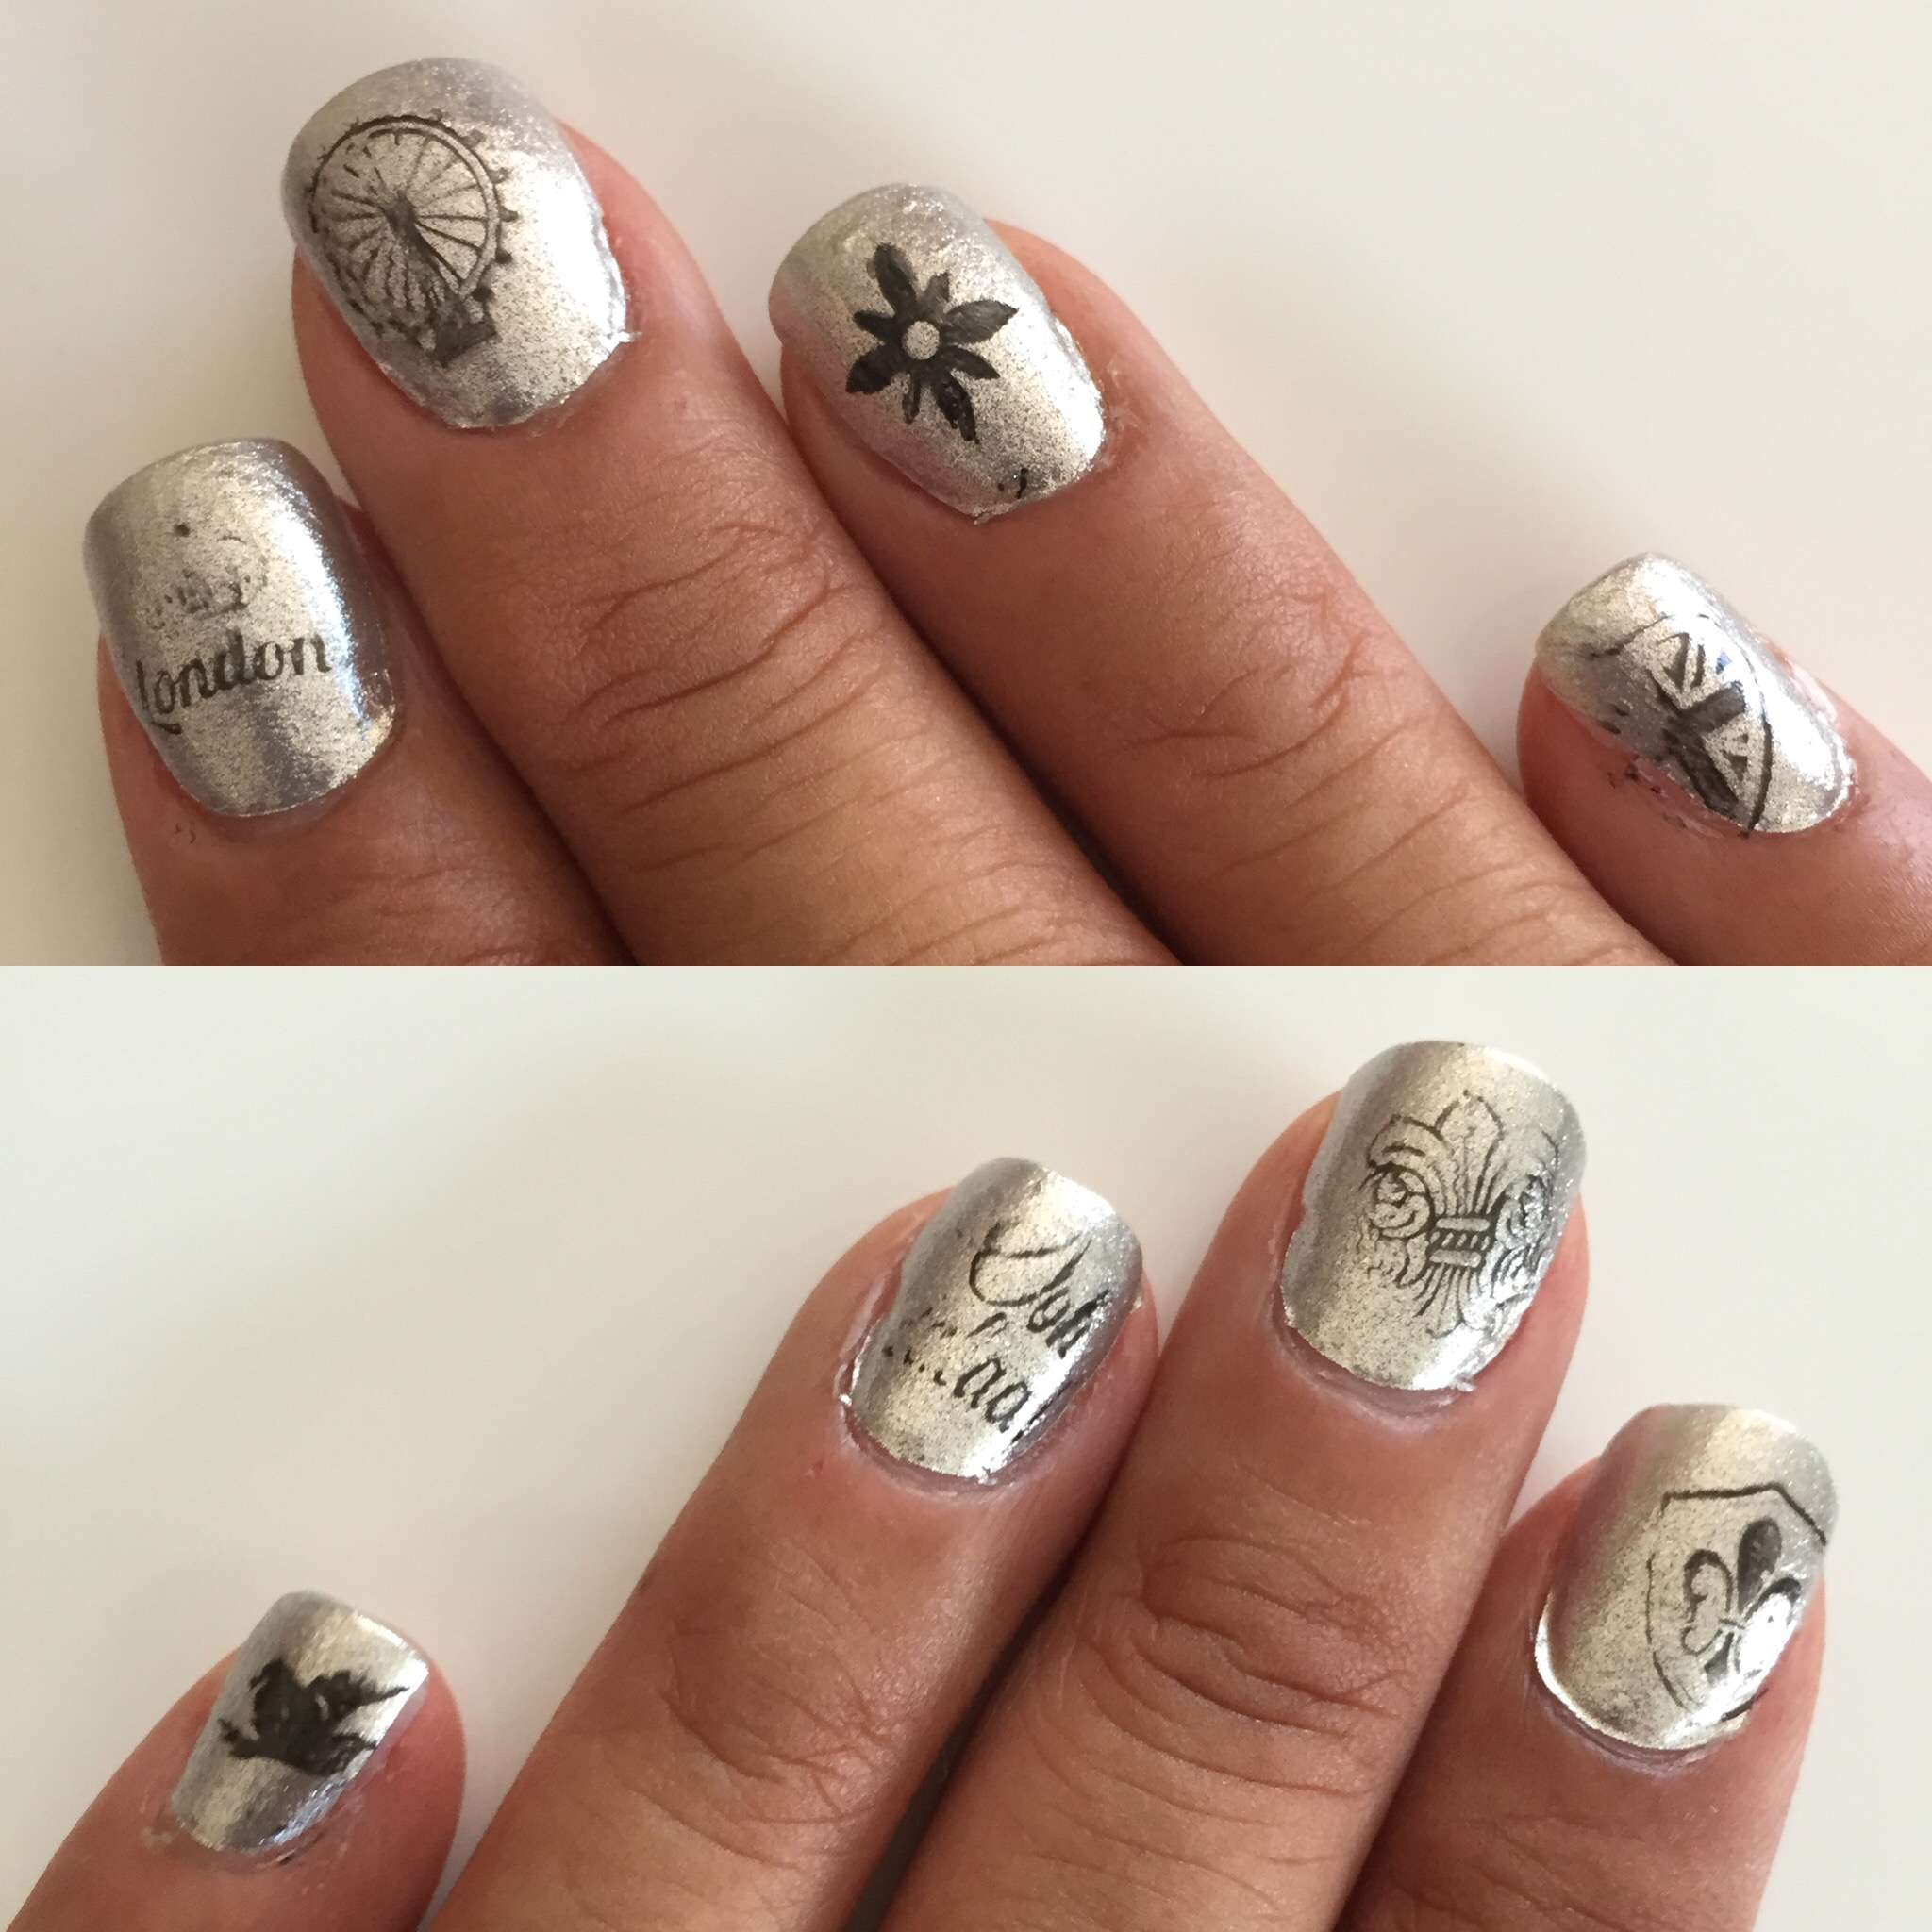 Nail art stamp collecting any second now i really just jumped right in without thinking about placement or knowing any kind of technique which is why they look like a bad photocopy prinsesfo Images